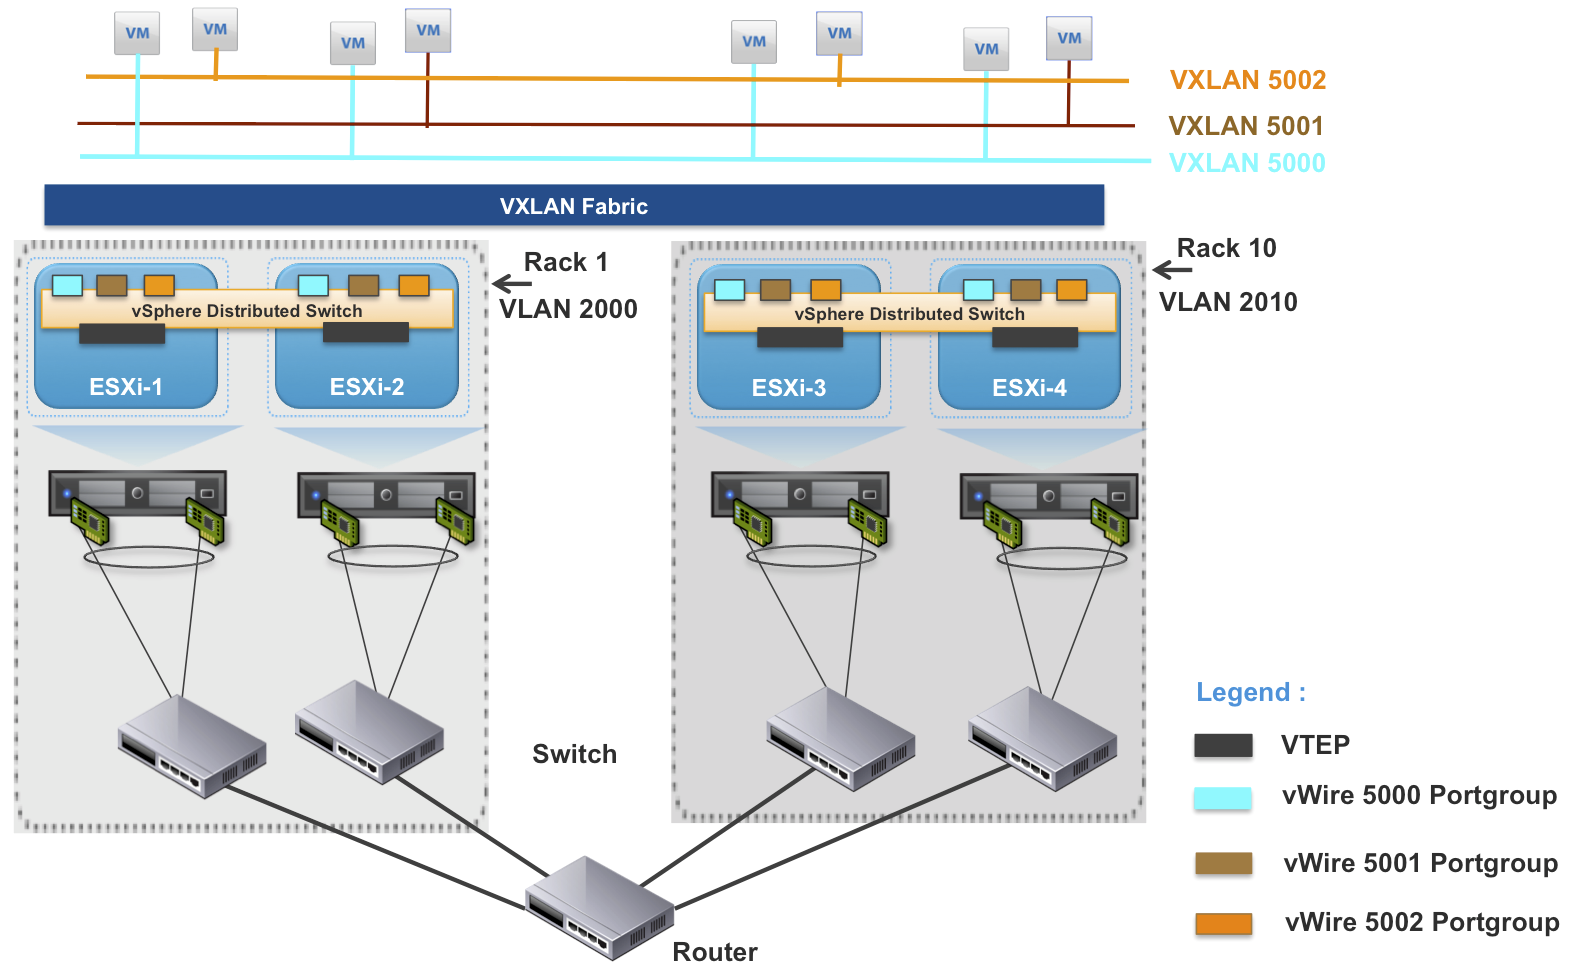 Vmware Logical Design Diagram Wiring For Professional Logic Network Example Useful Vxlan Commands In Esxcli 5 1 Vsphere Blog Database